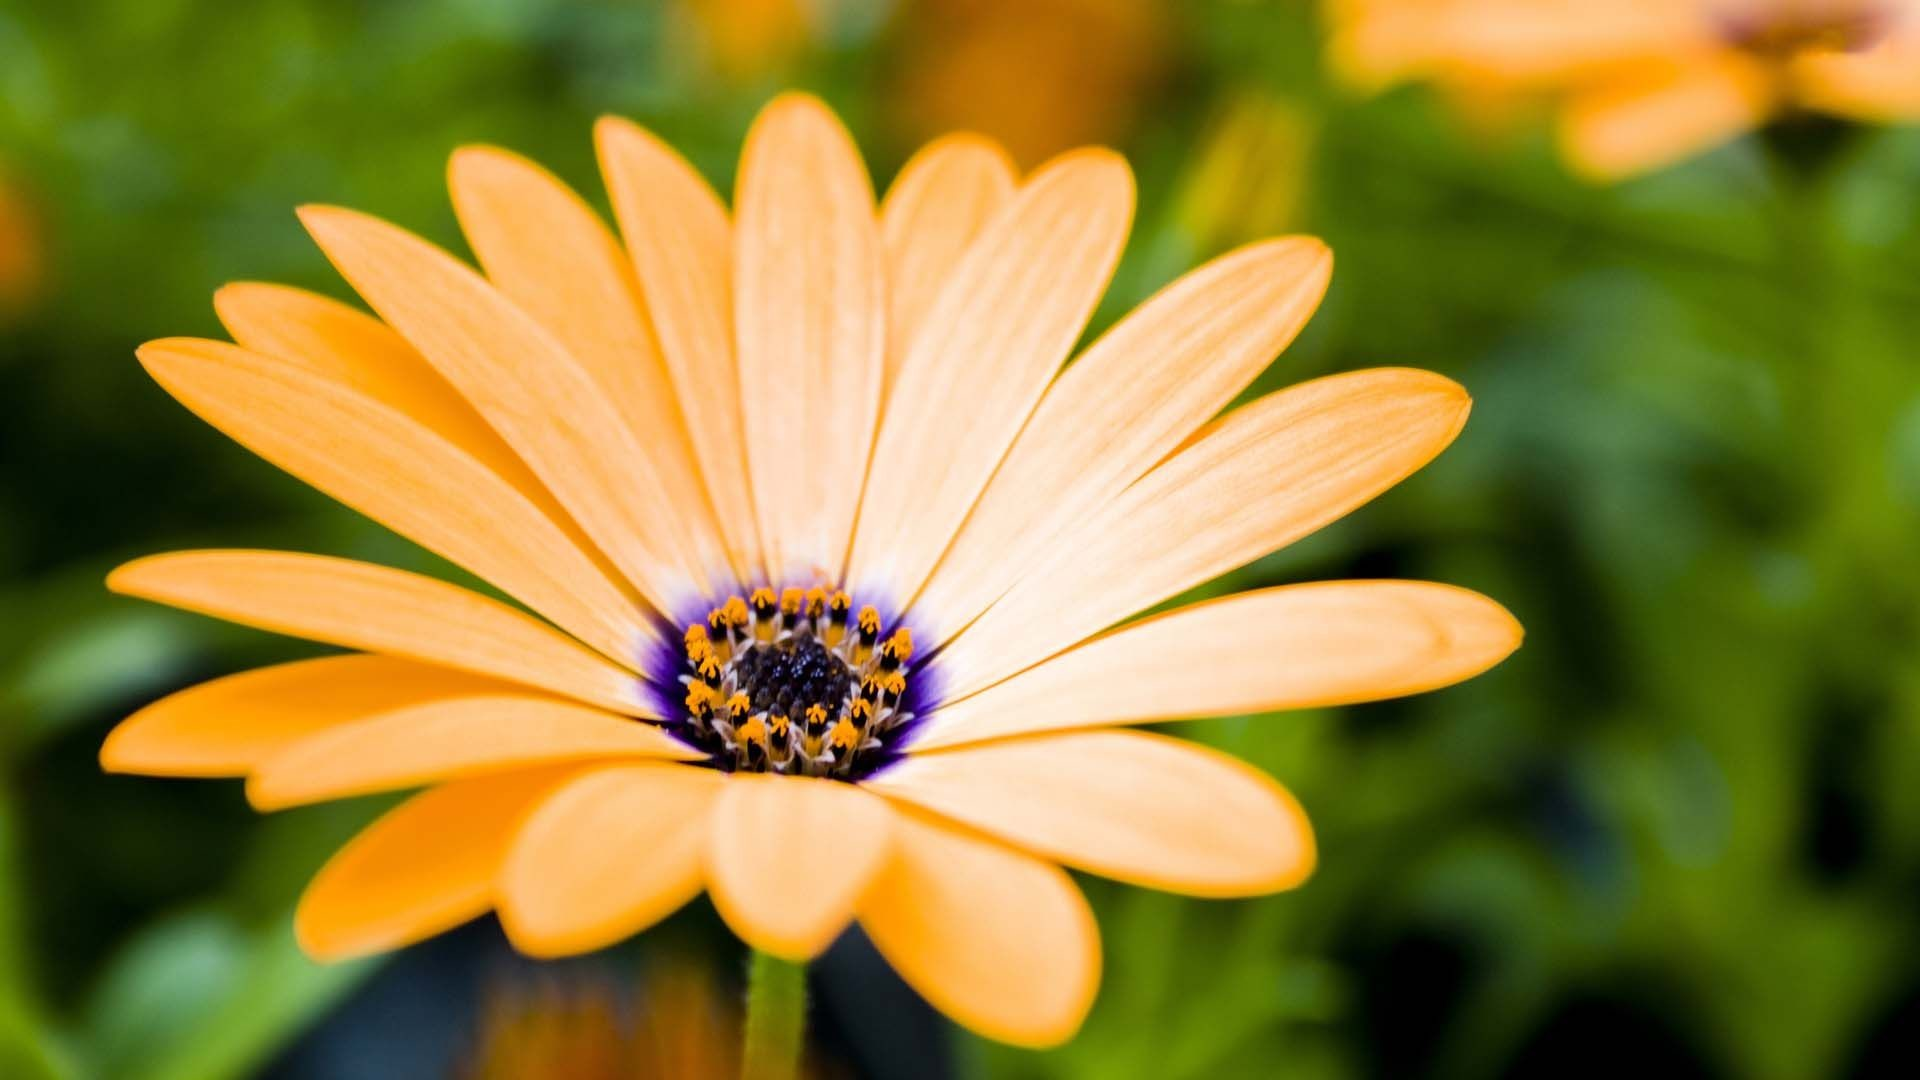 Res: 1920x1080, Cream Colored Daisy | HD Flowers Wallpaper Free Download ...